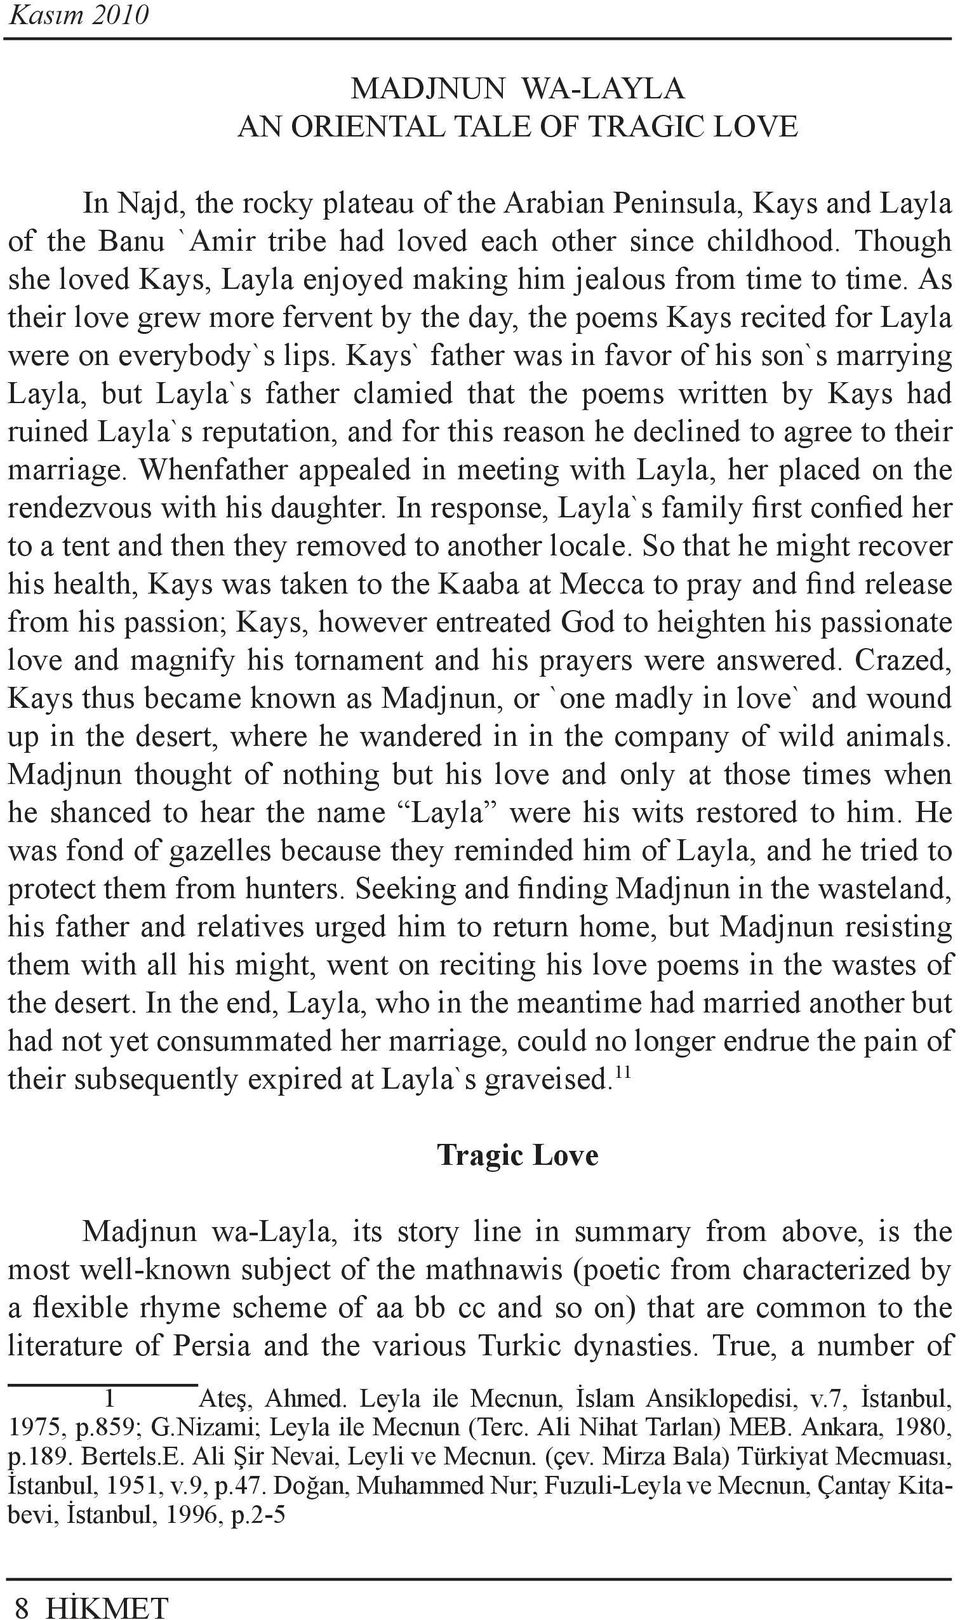 Kays` father was in favor of his son`s marrying Layla, but Layla`s father clamied that the poems written by Kays had ruined Layla`s reputation, and for this reason he declined to agree to their